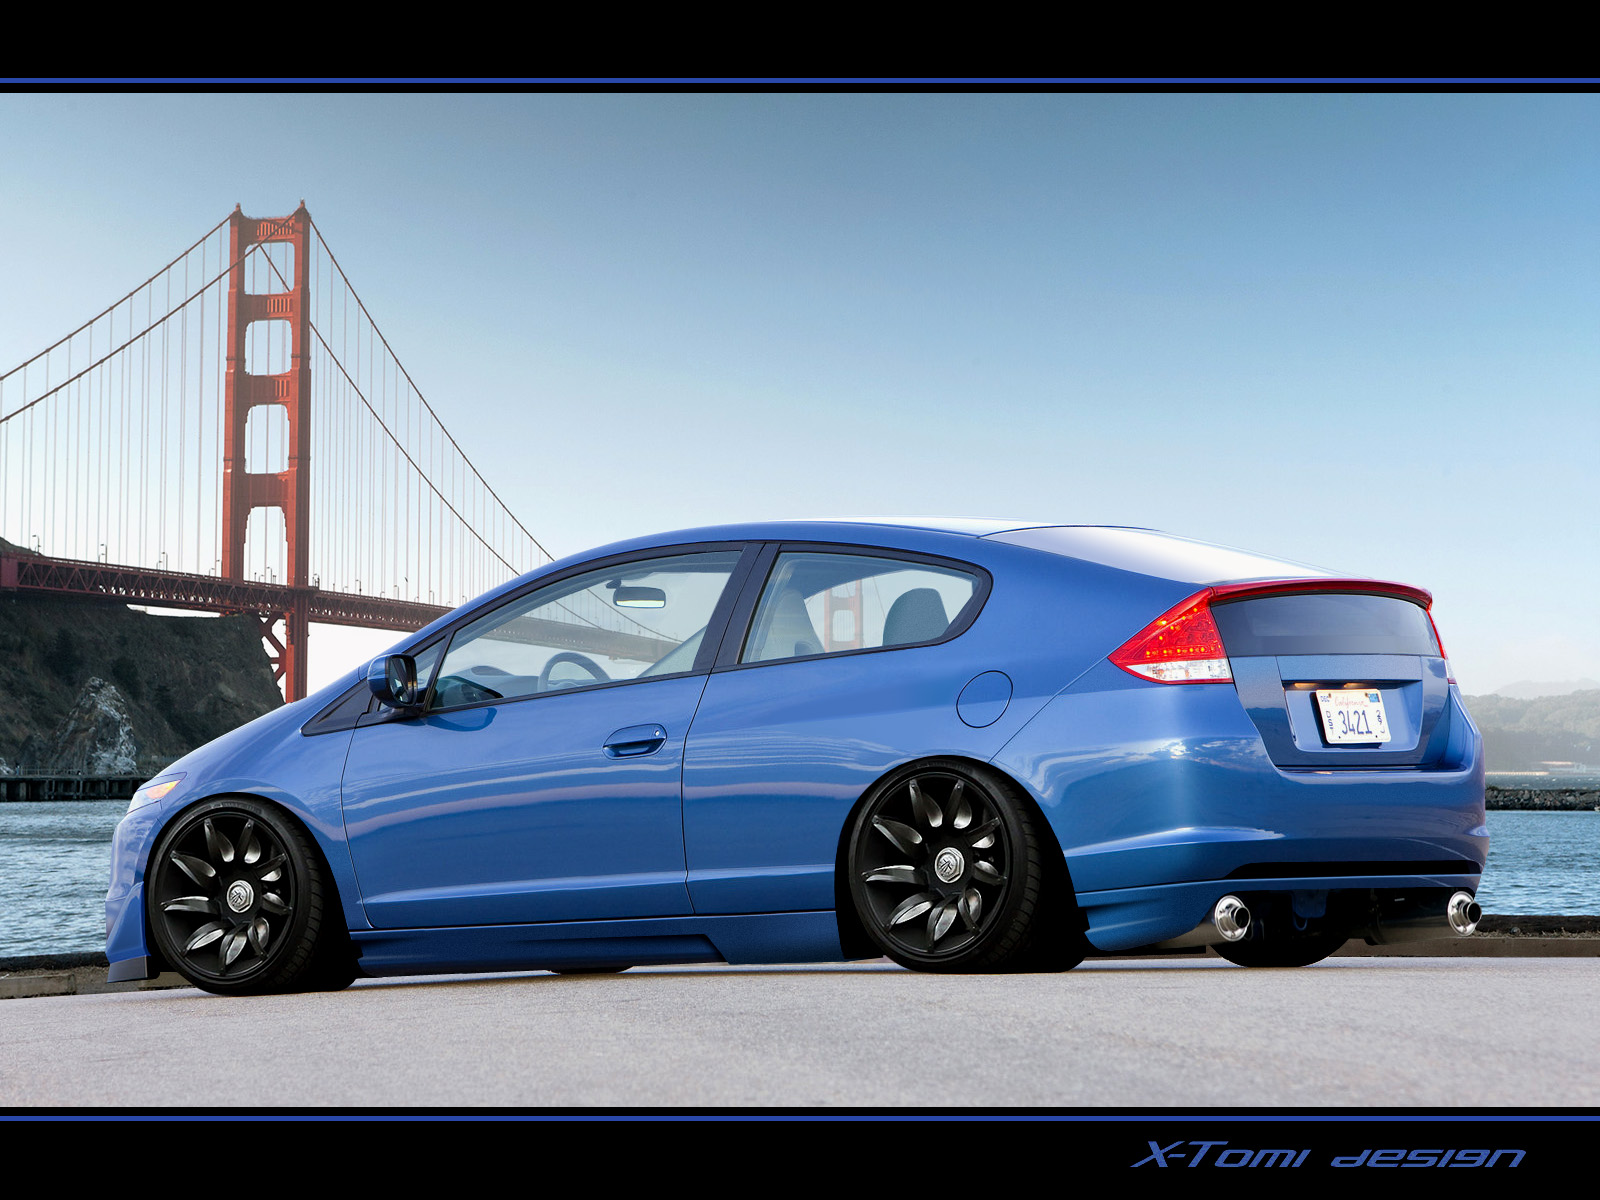 2013 Honda Civic Sedan >> X-Tomi Design: 2009